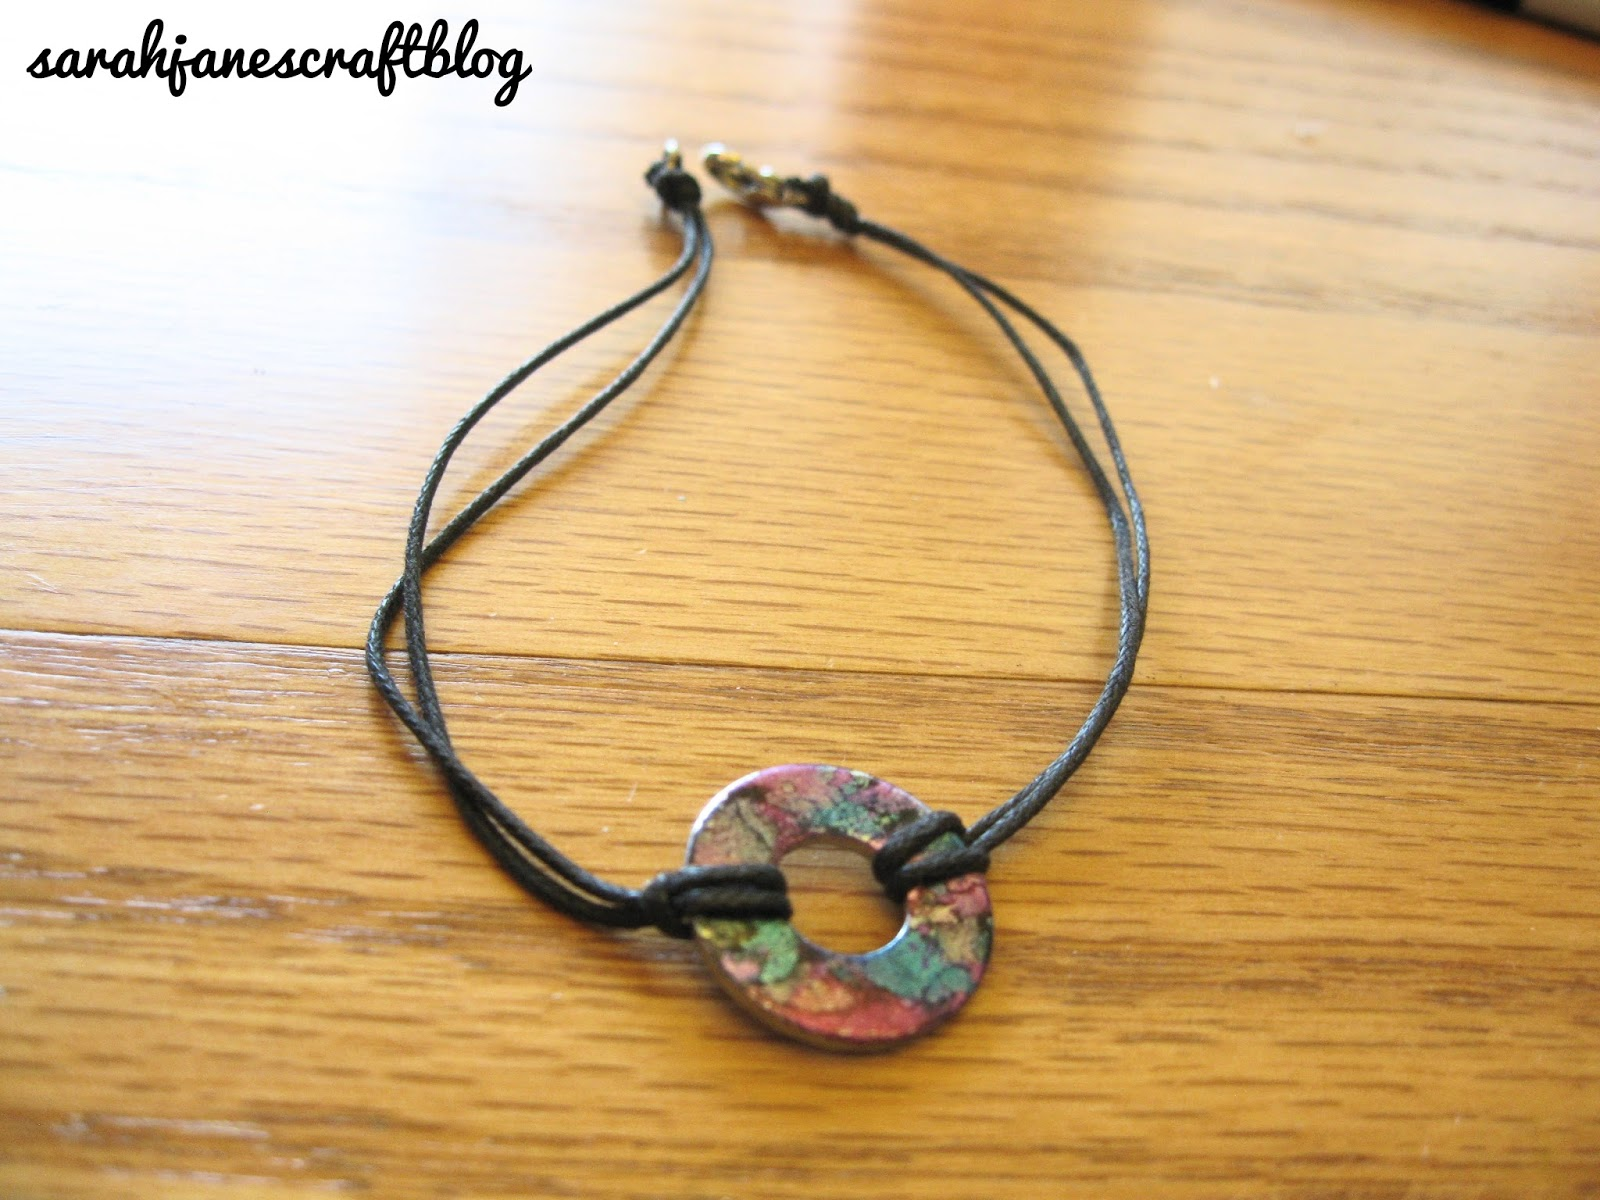 arts project necklaces washer diy ideas bracelets and necklace crafts